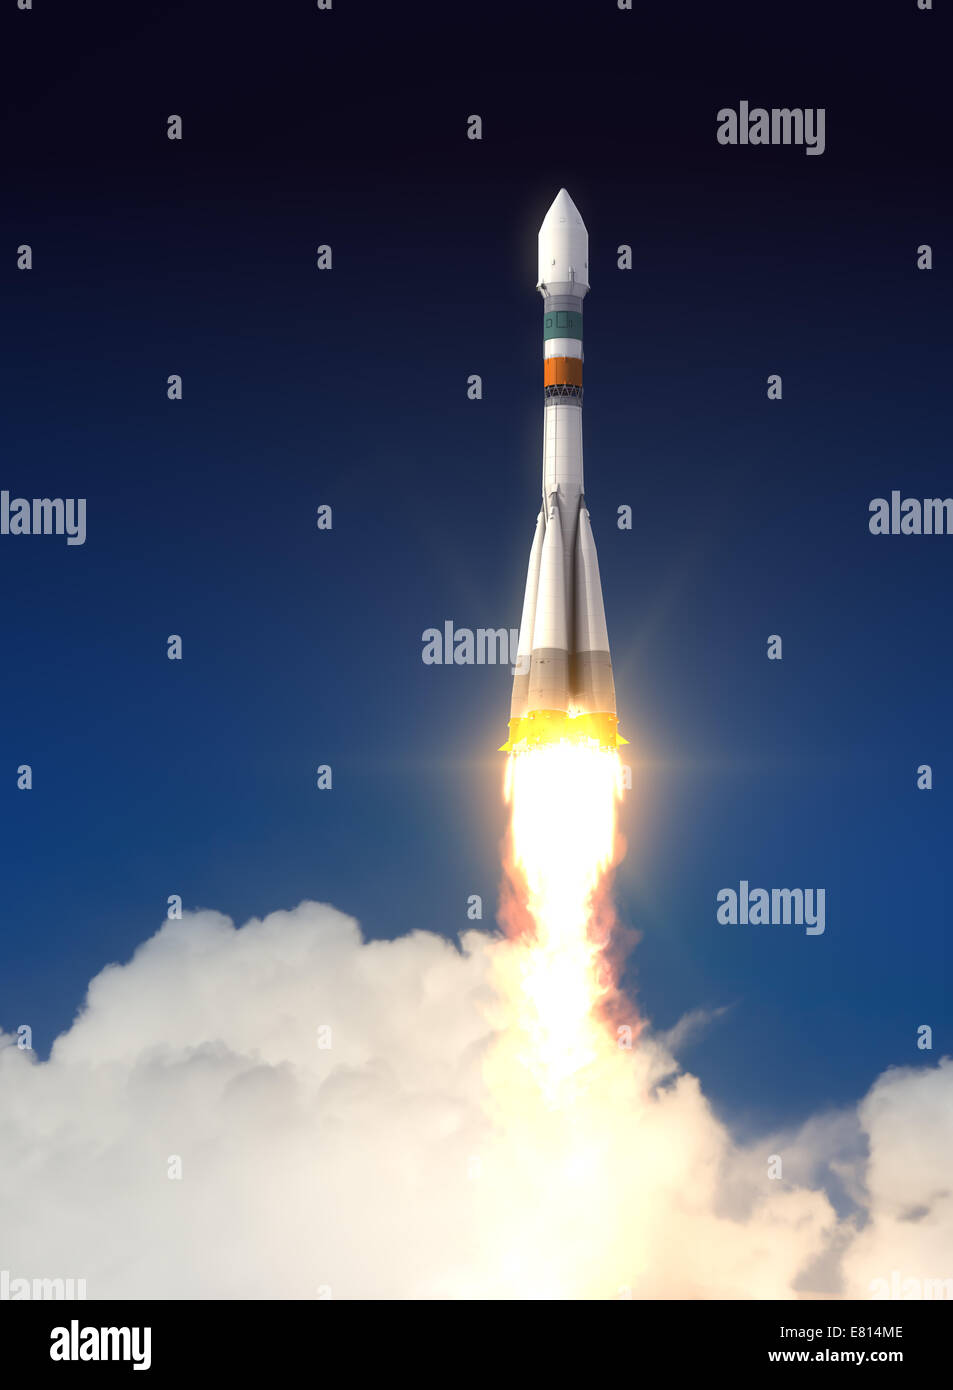 Carrier Rocket Soyuz-Fregat Takes Off. 3D Scene. - Stock Image